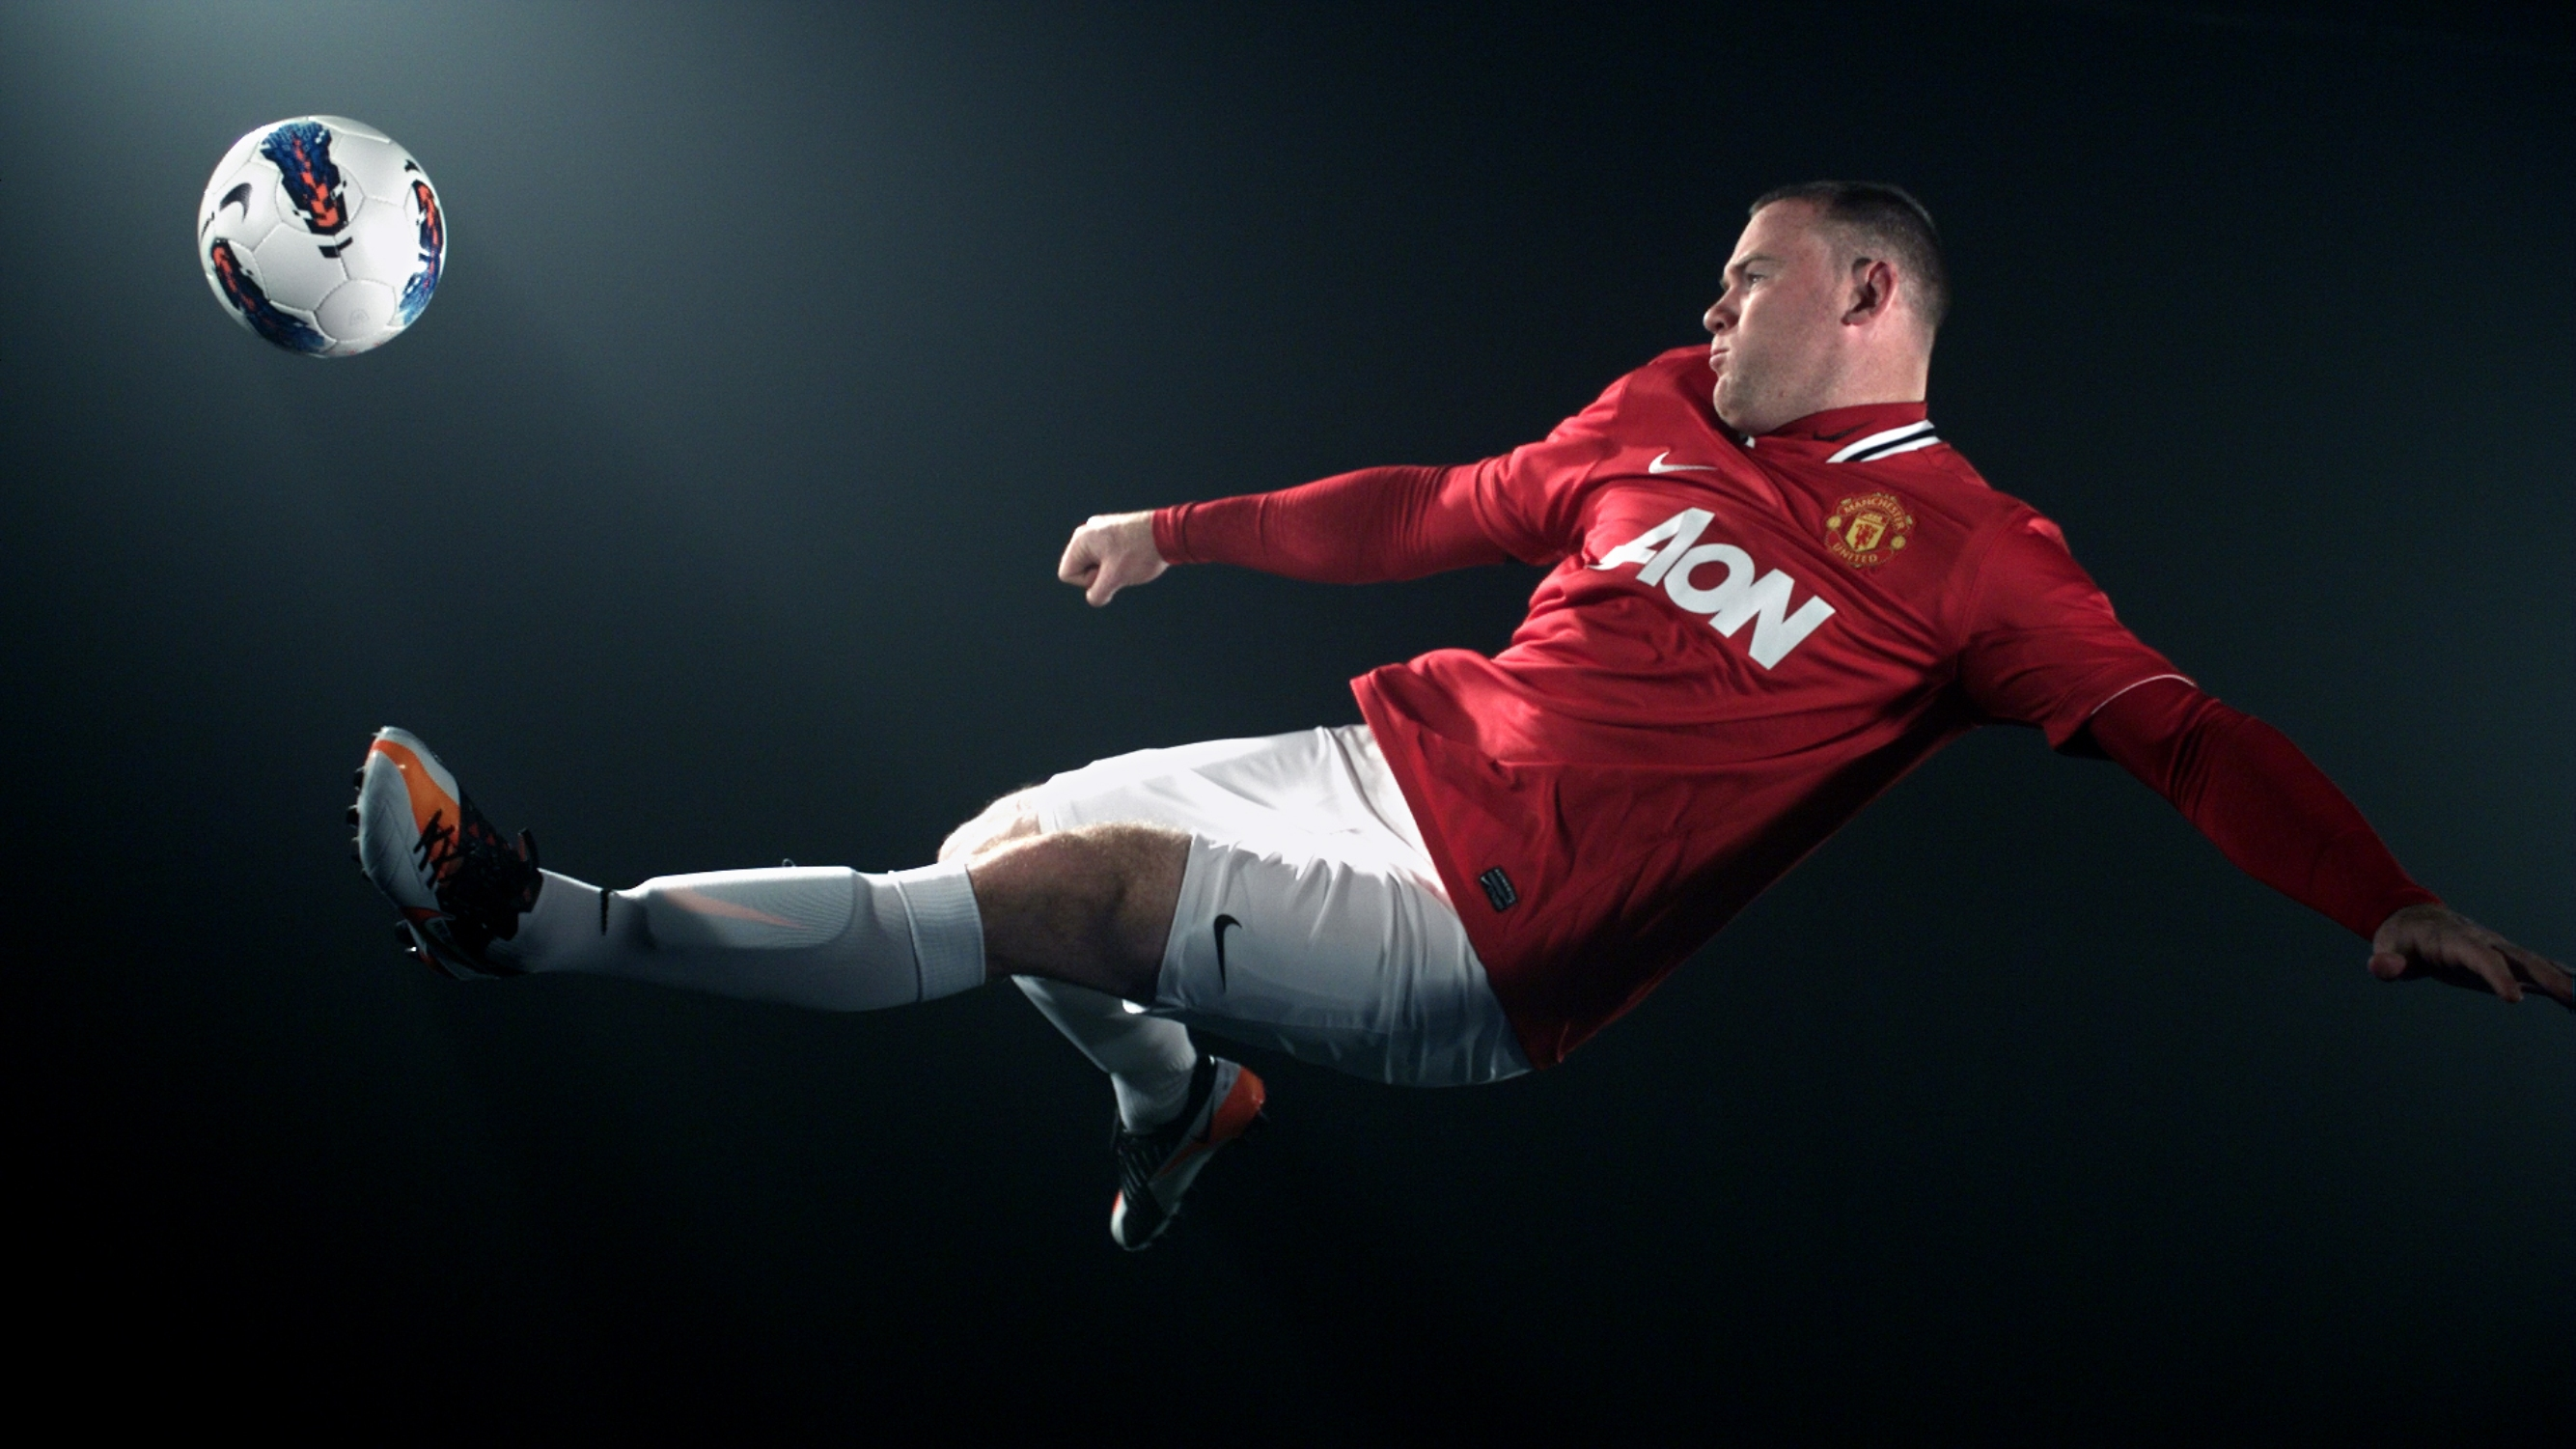 Wayne Rooney Bicycle Kick Poster Search result for wayne rooney bicycle kick